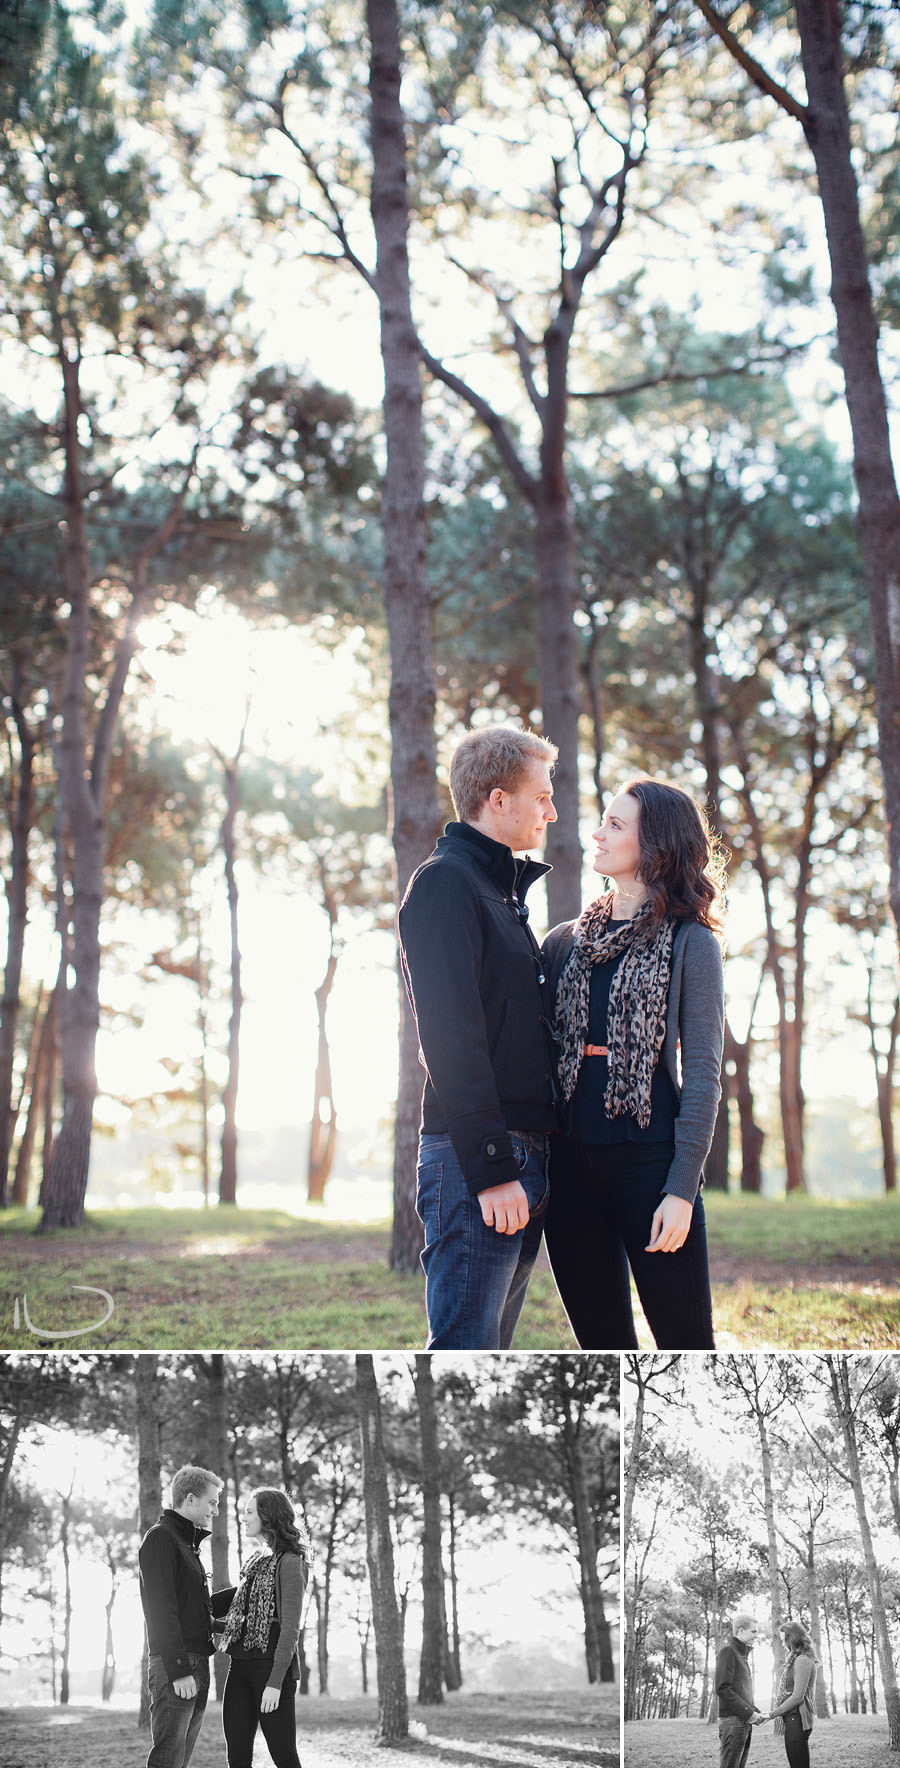 Sydney Engagement Photographer: Todd & Louise in Centennial Park